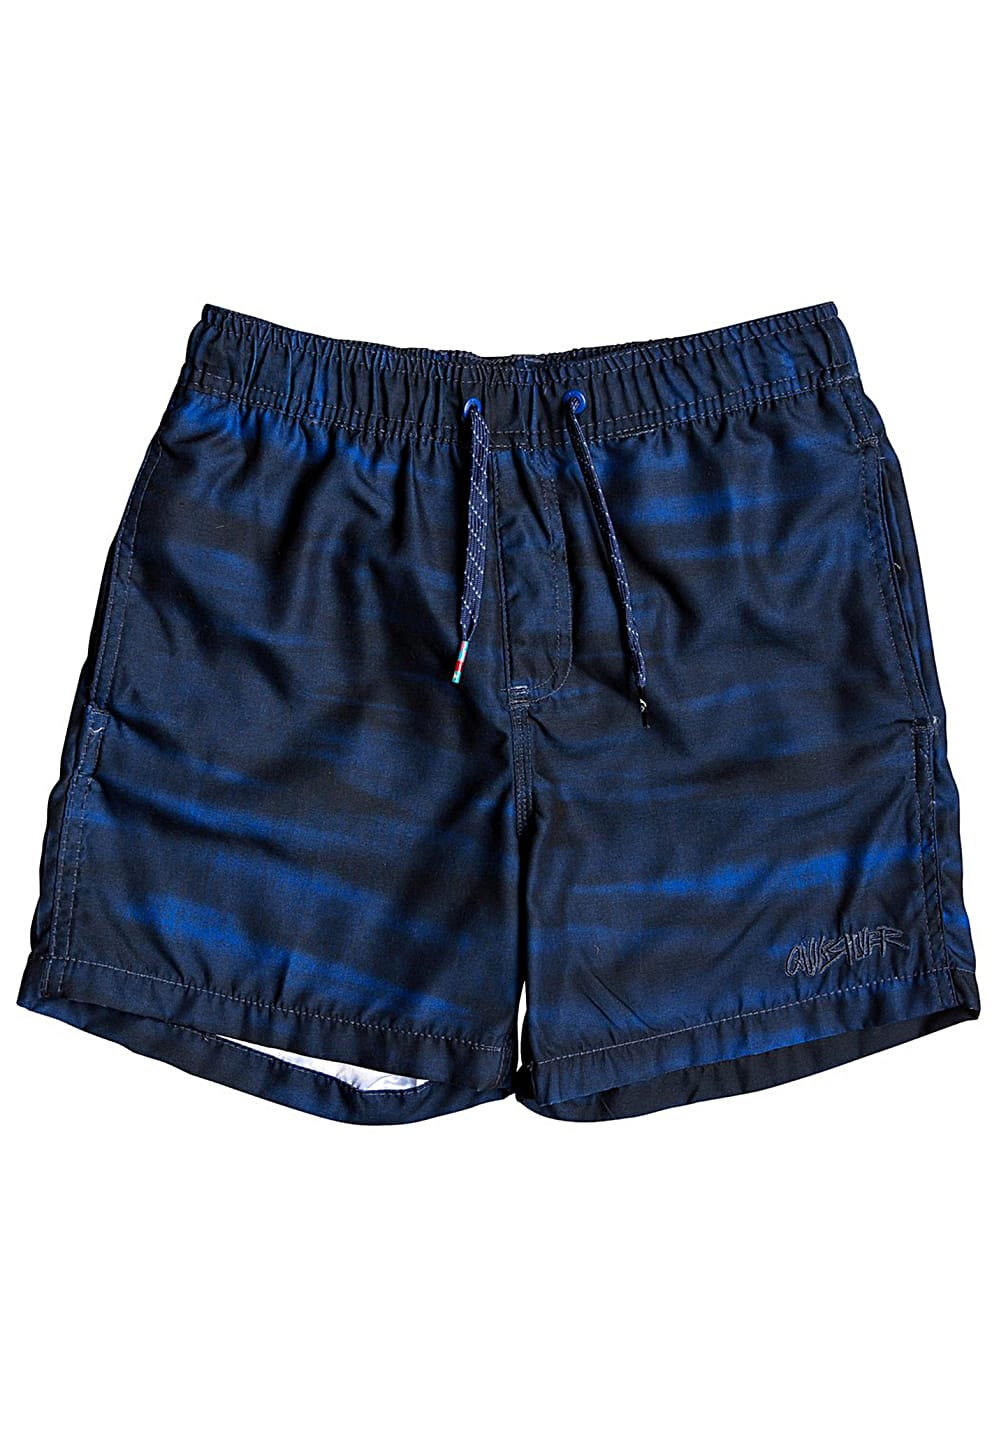 Boysbademode - Quiksilver Acid Volley 14 Boardshorts für Jungs Blau - Onlineshop Planet Sports